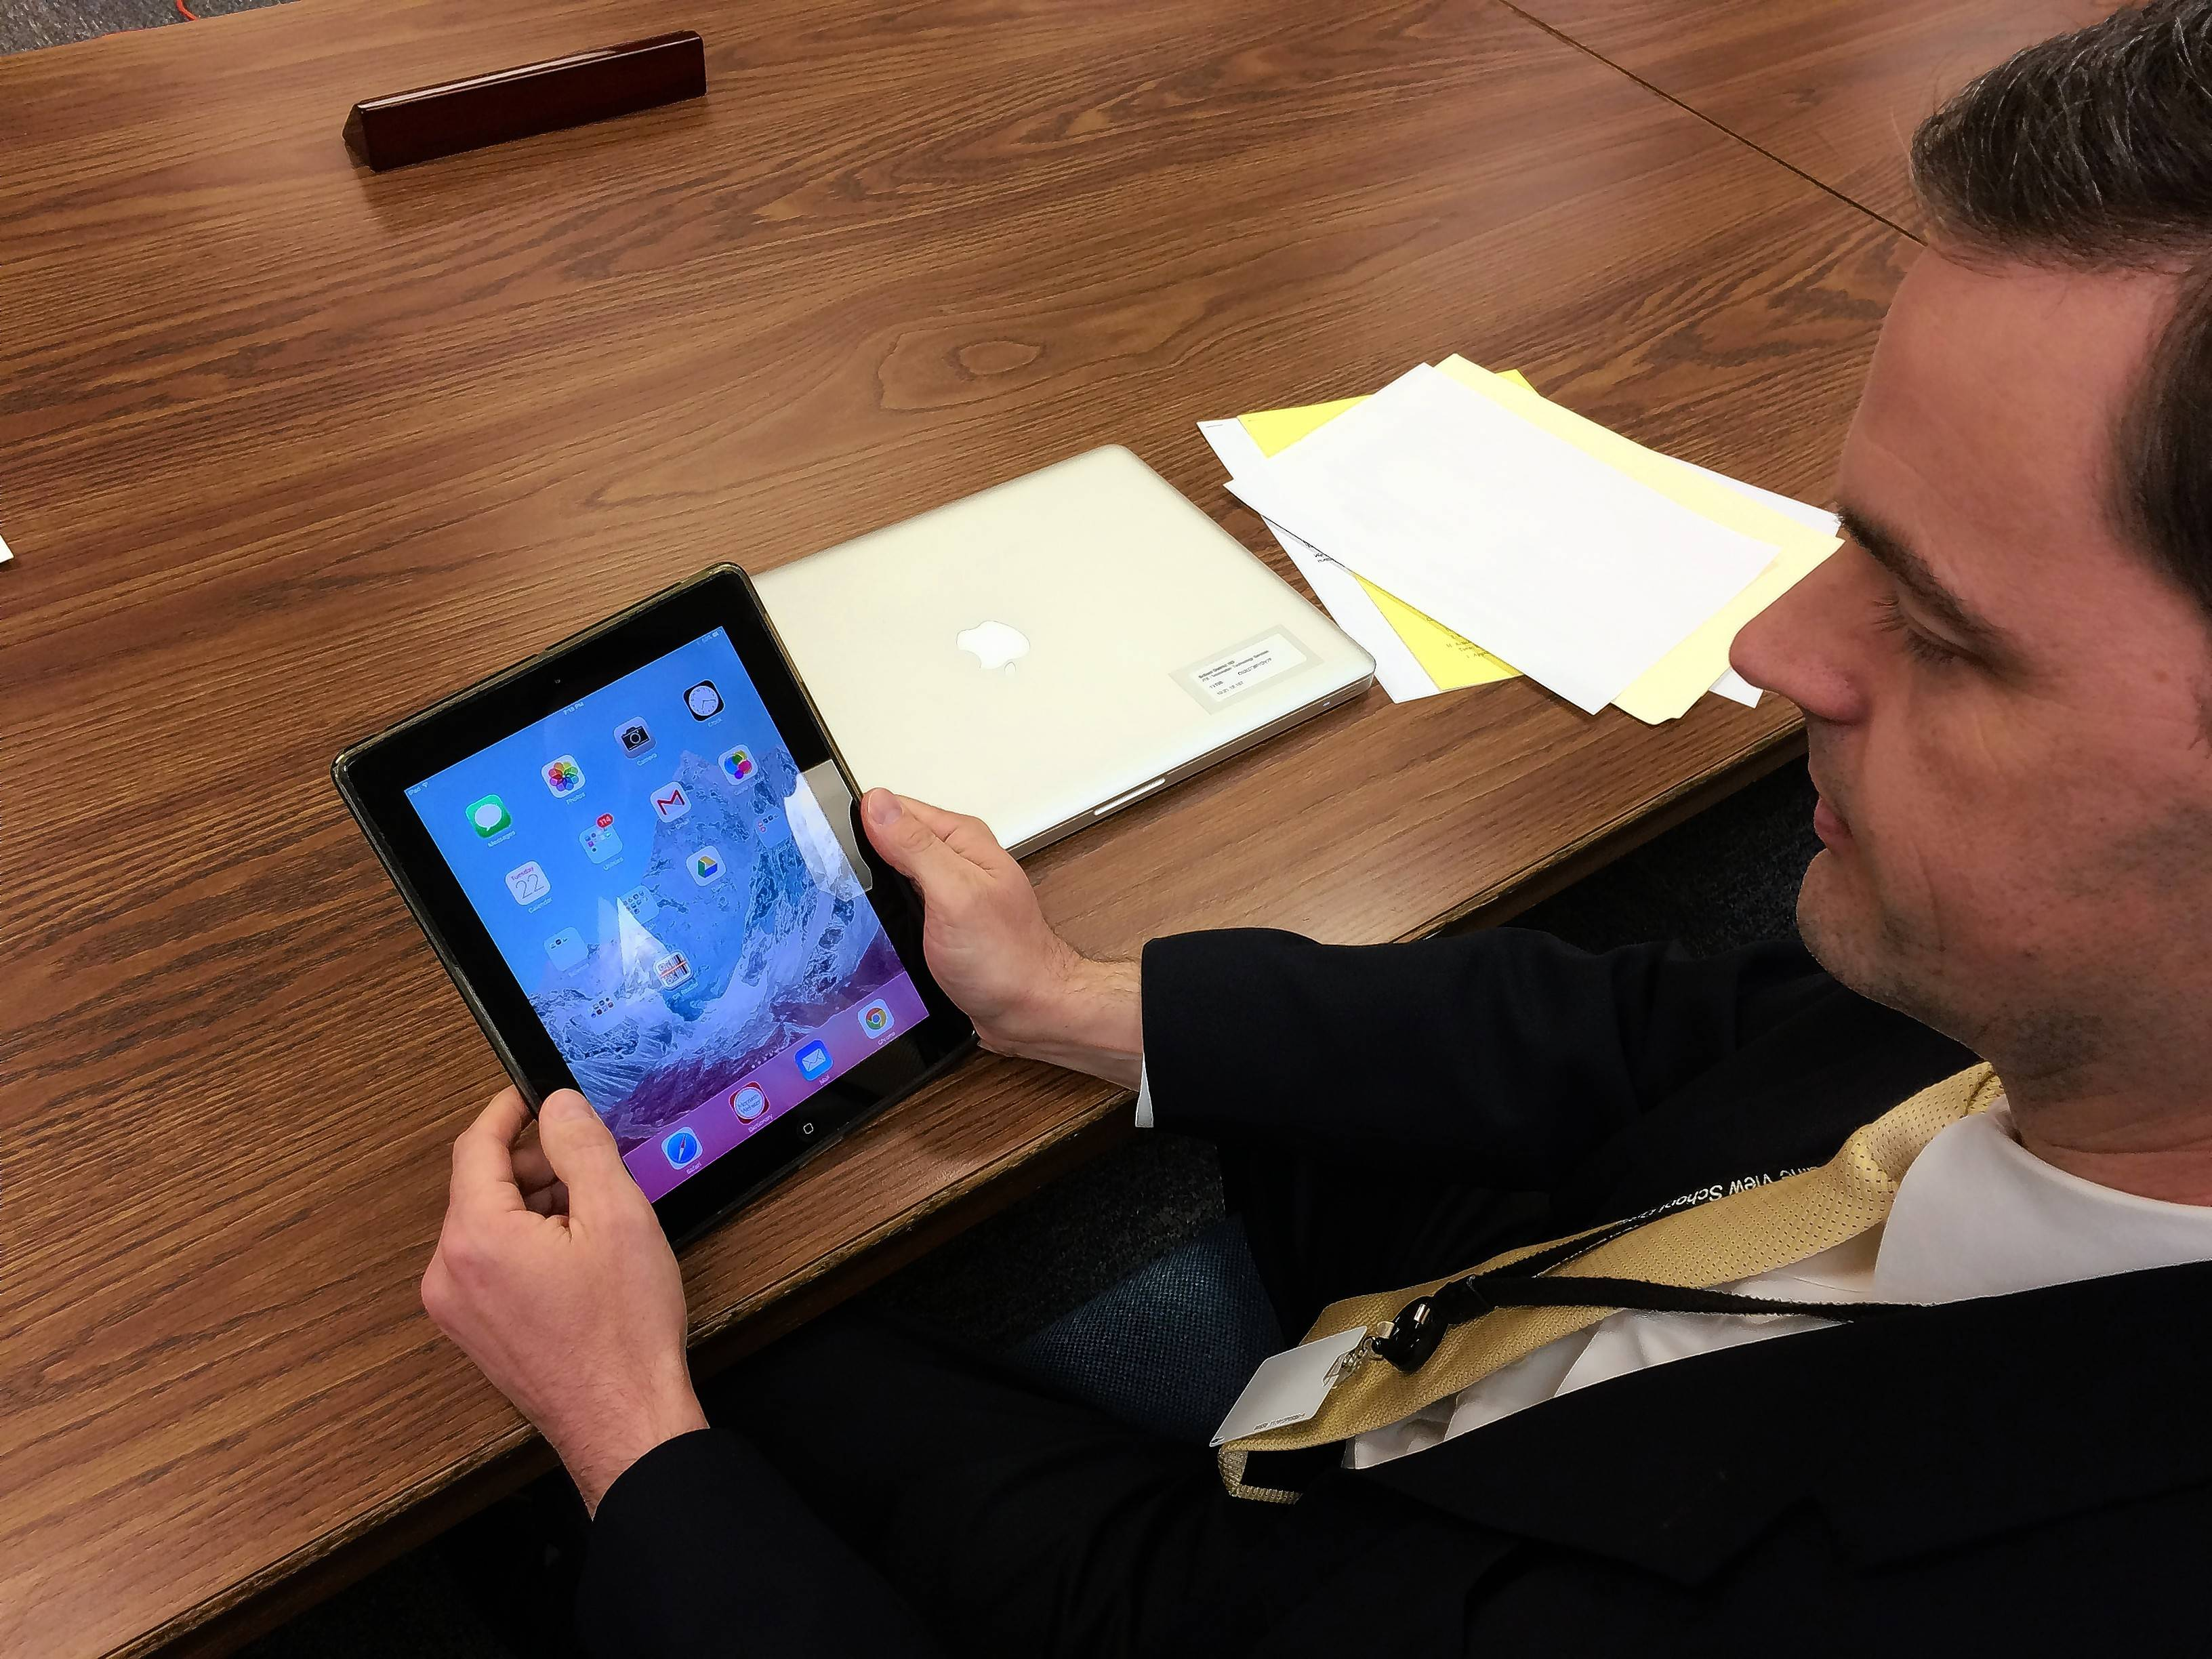 District 103 concerned about students playing games on iPads